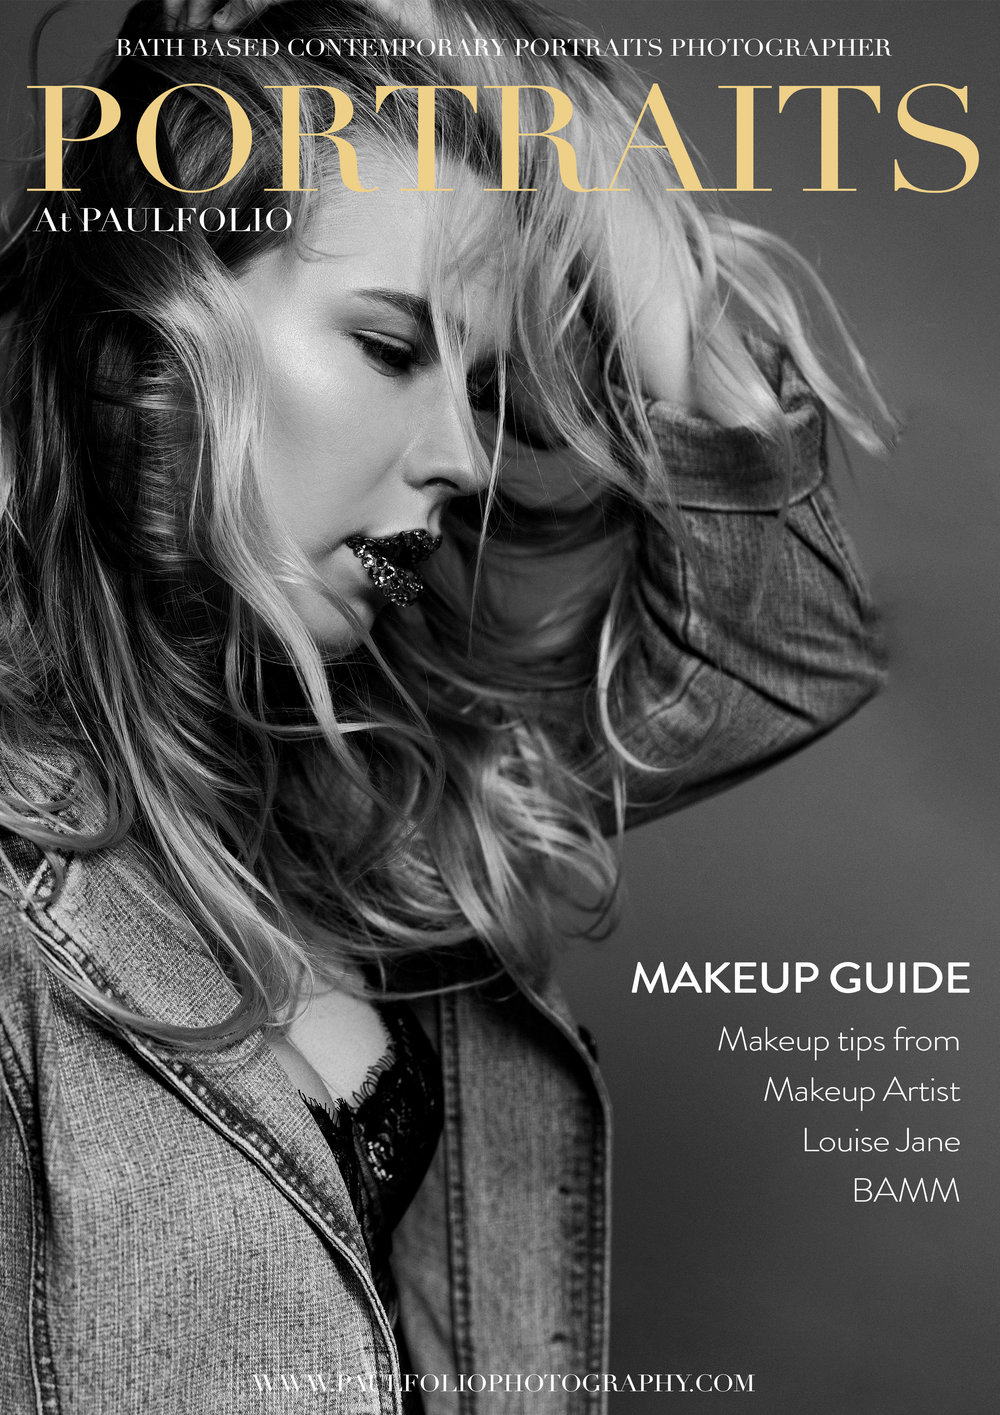 Makeup Guide Cover.jpg